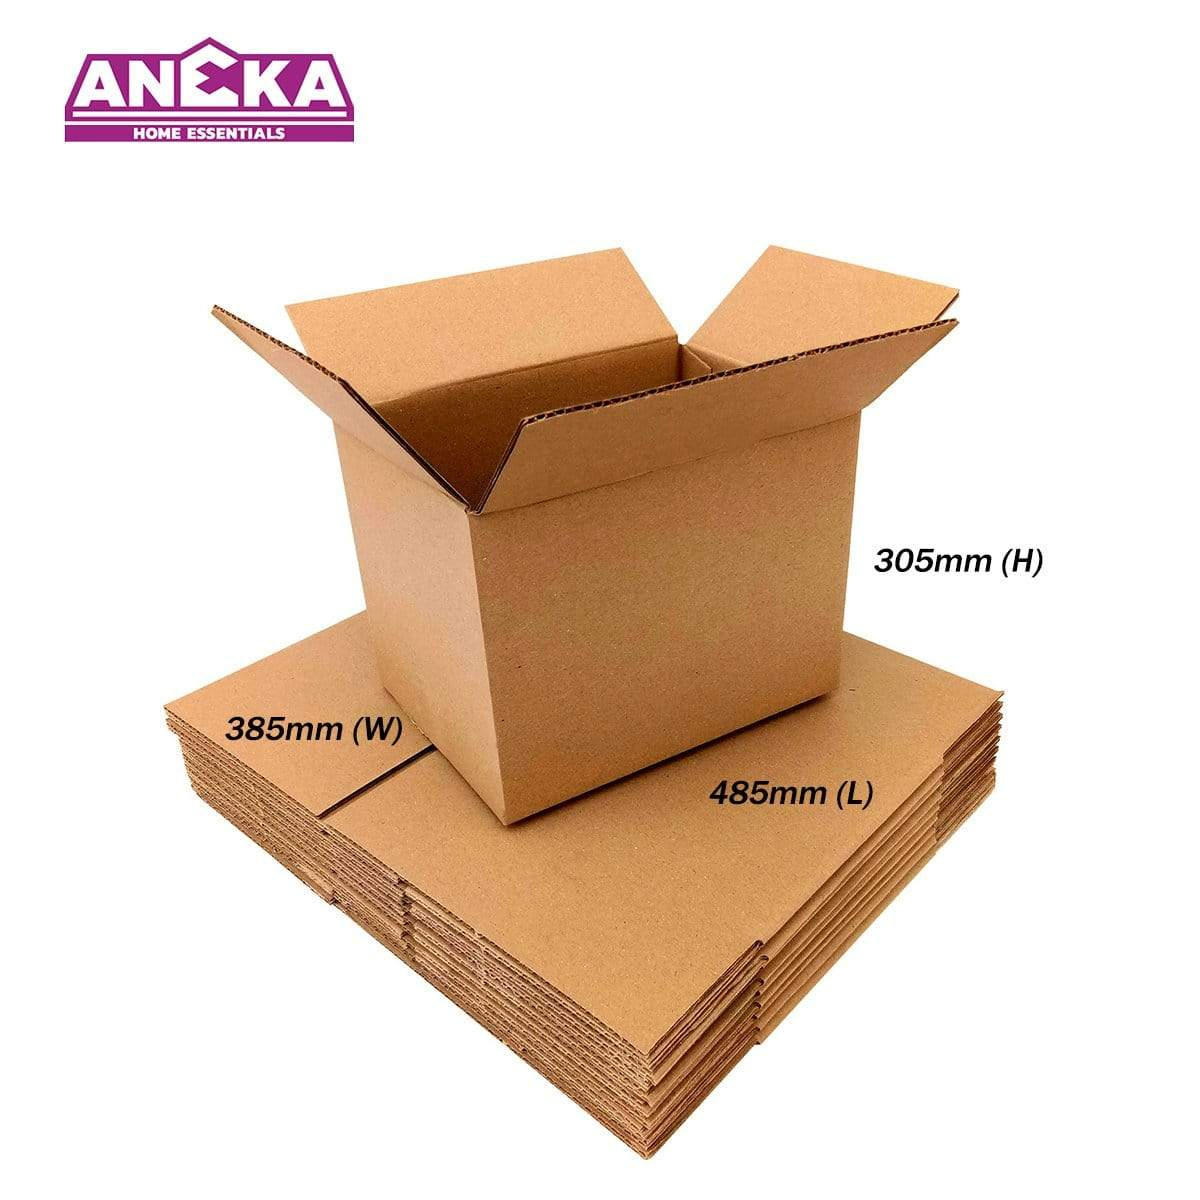 20pcs Packing Box Packaging Box Carton Box Paper Boxes Kotak 485 x 385 x 305mm